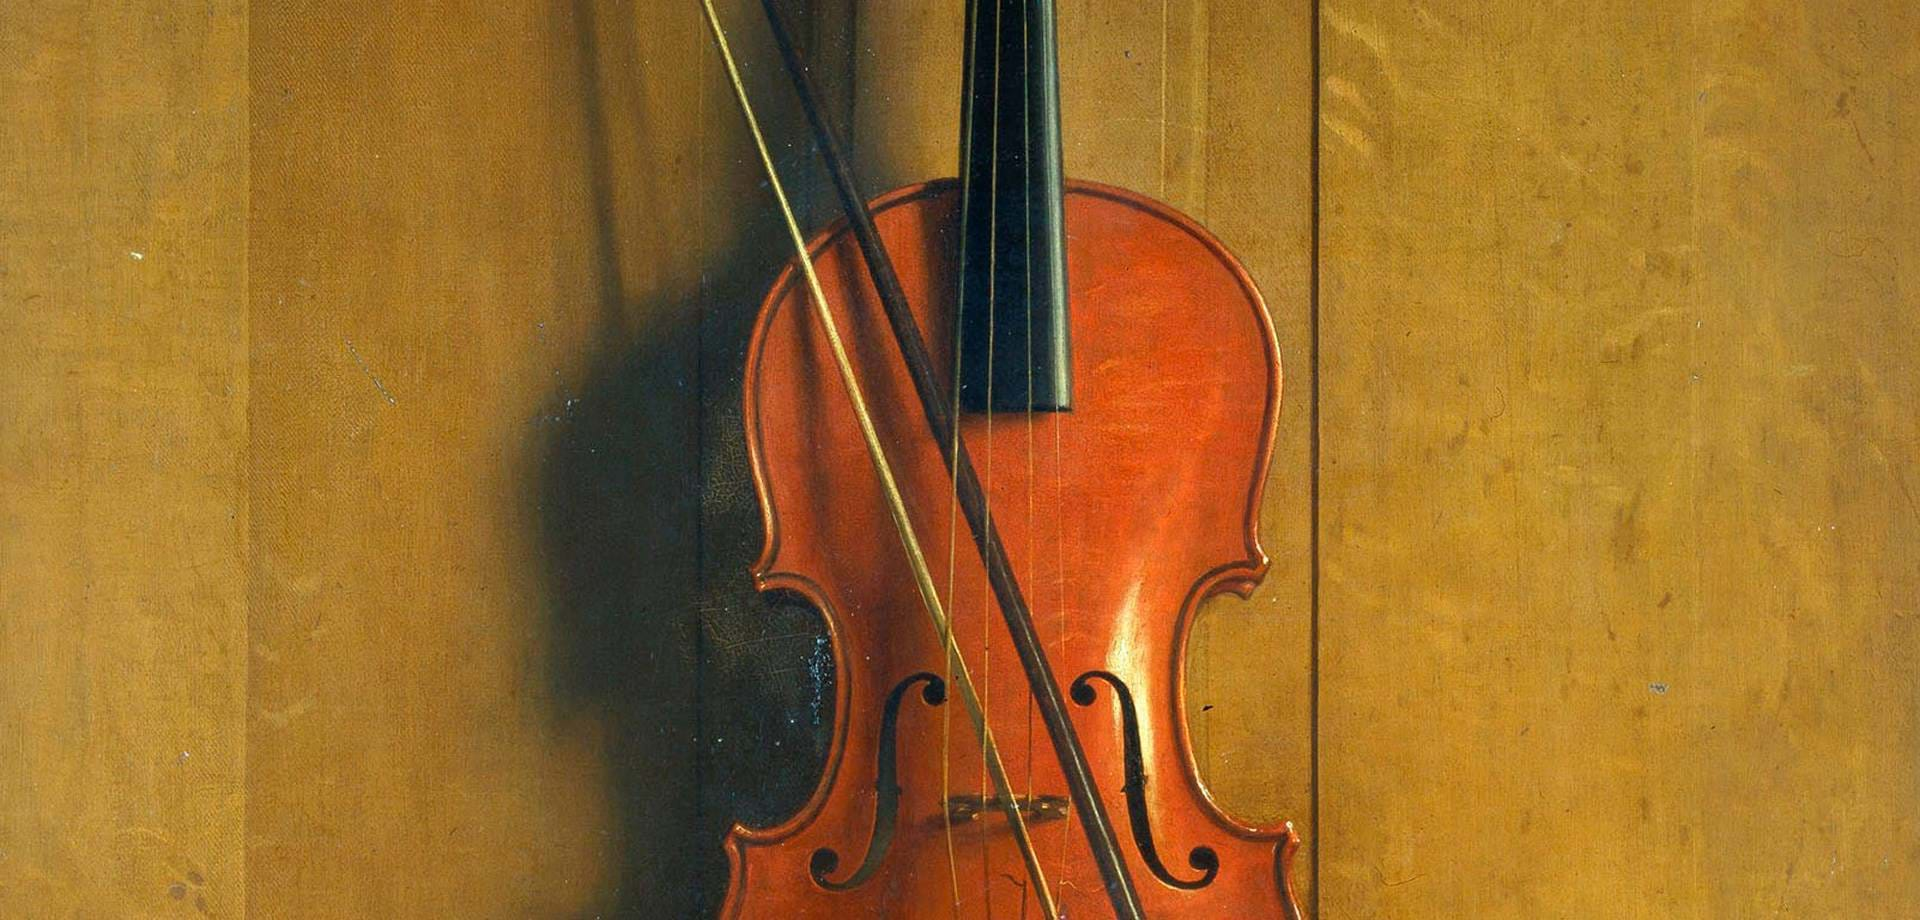 Trompe l'oeil of a violin and bow hanging on a door